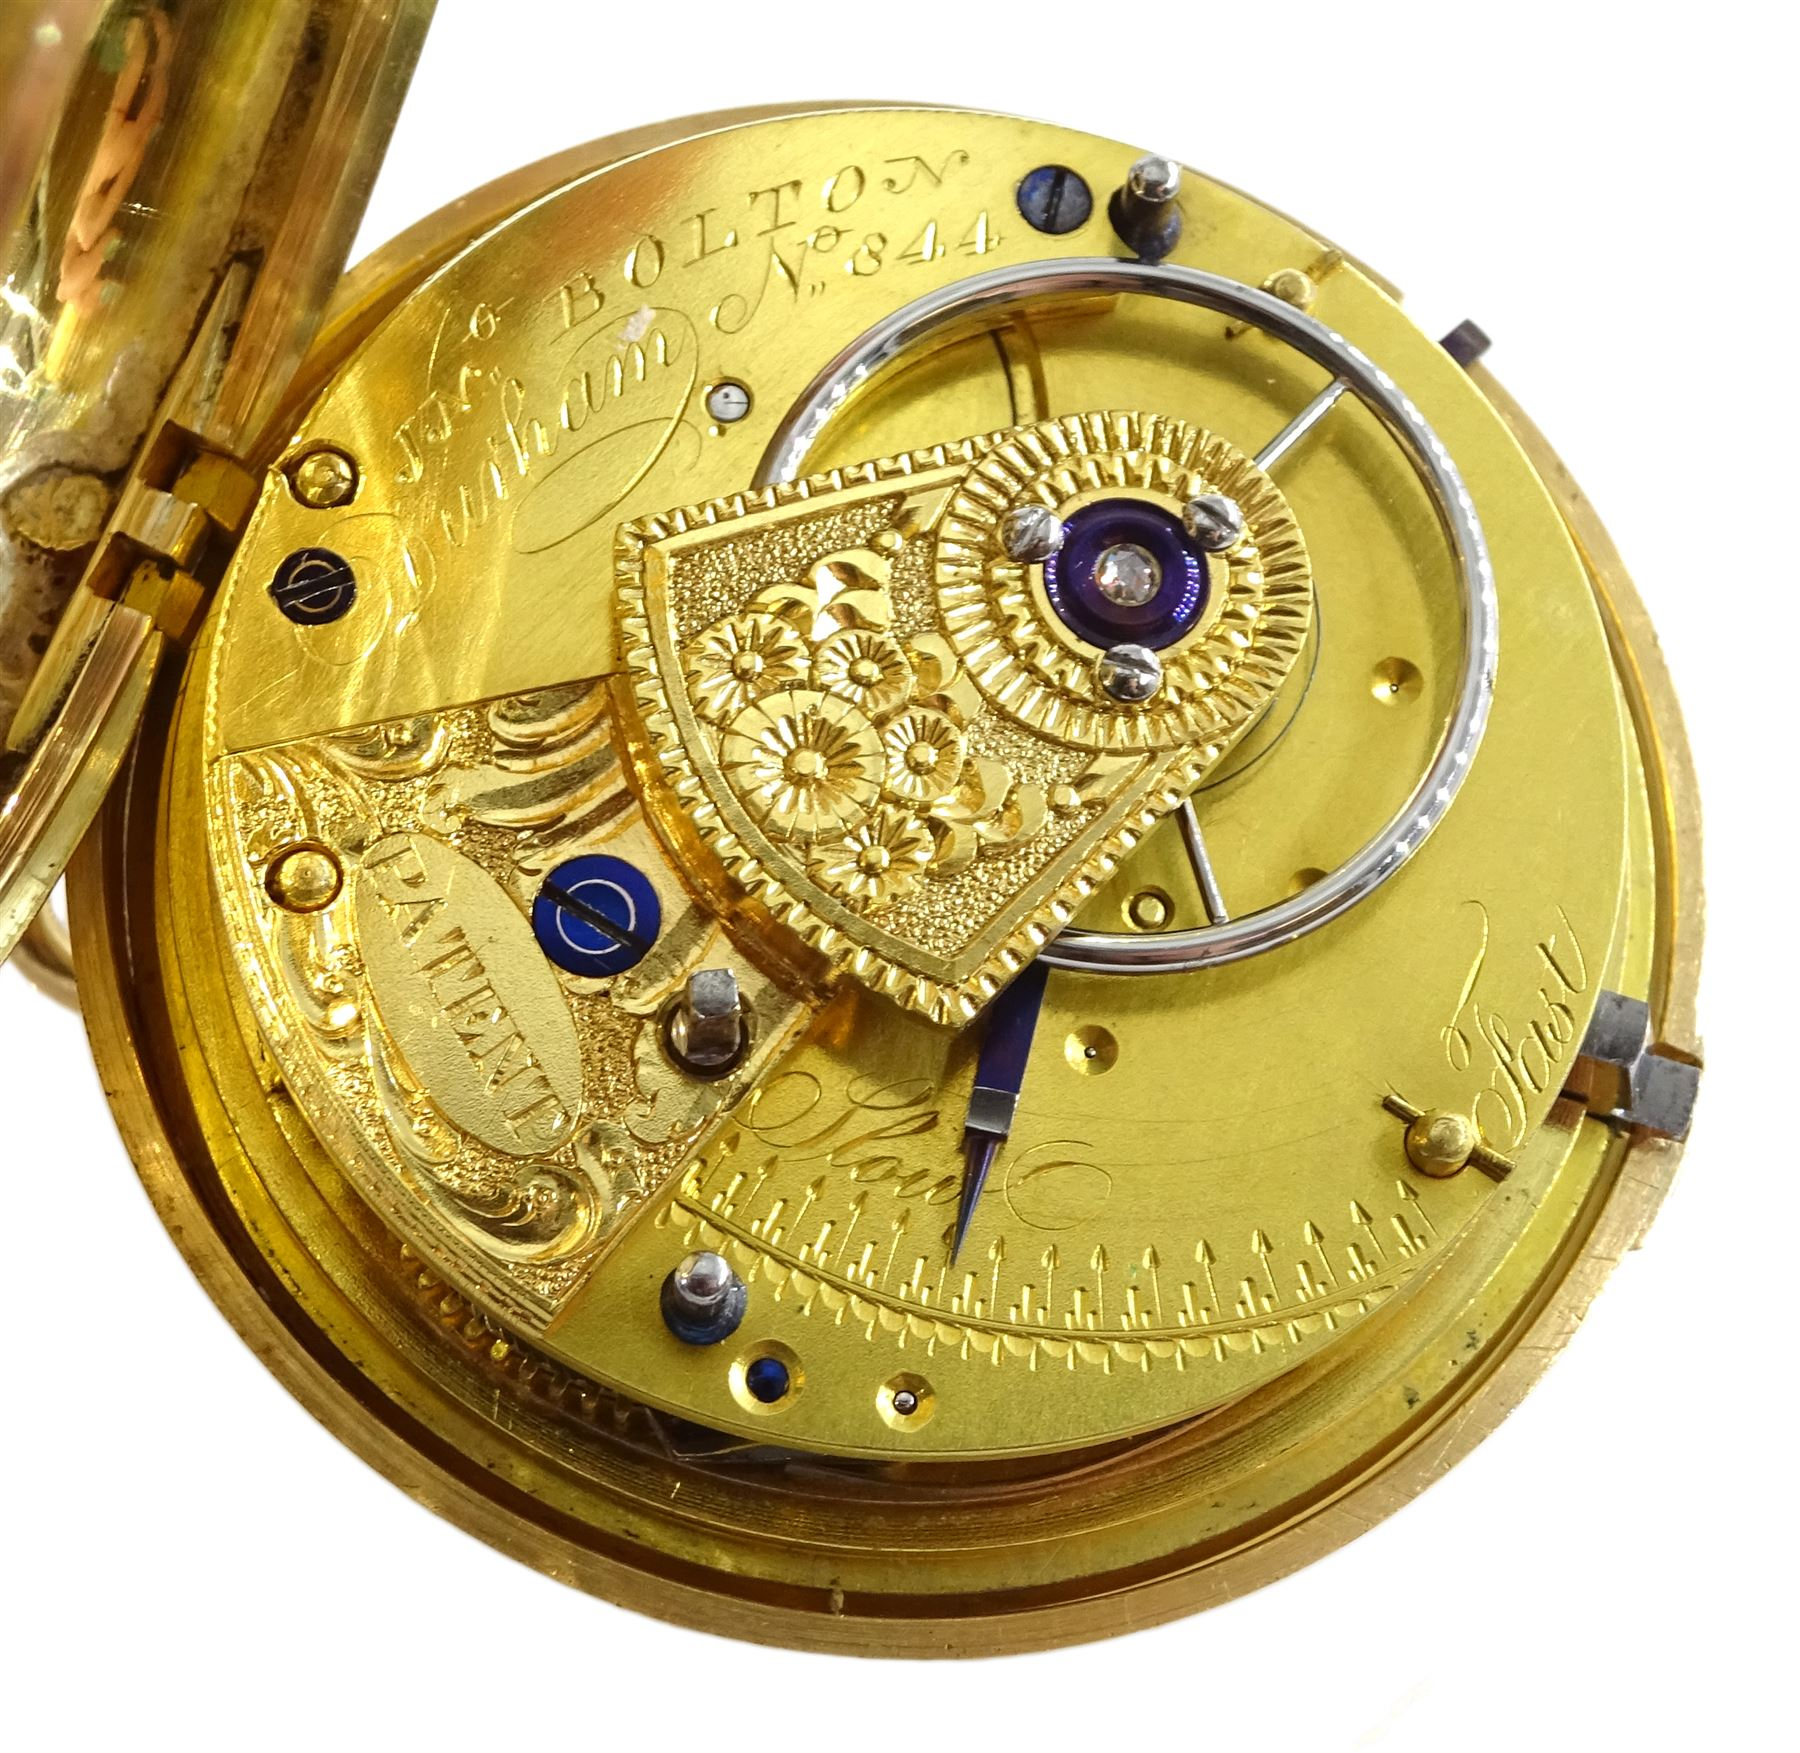 George III 18ct gold pair cased English lever fusee pocket watch by John Bolton - Image 2 of 9